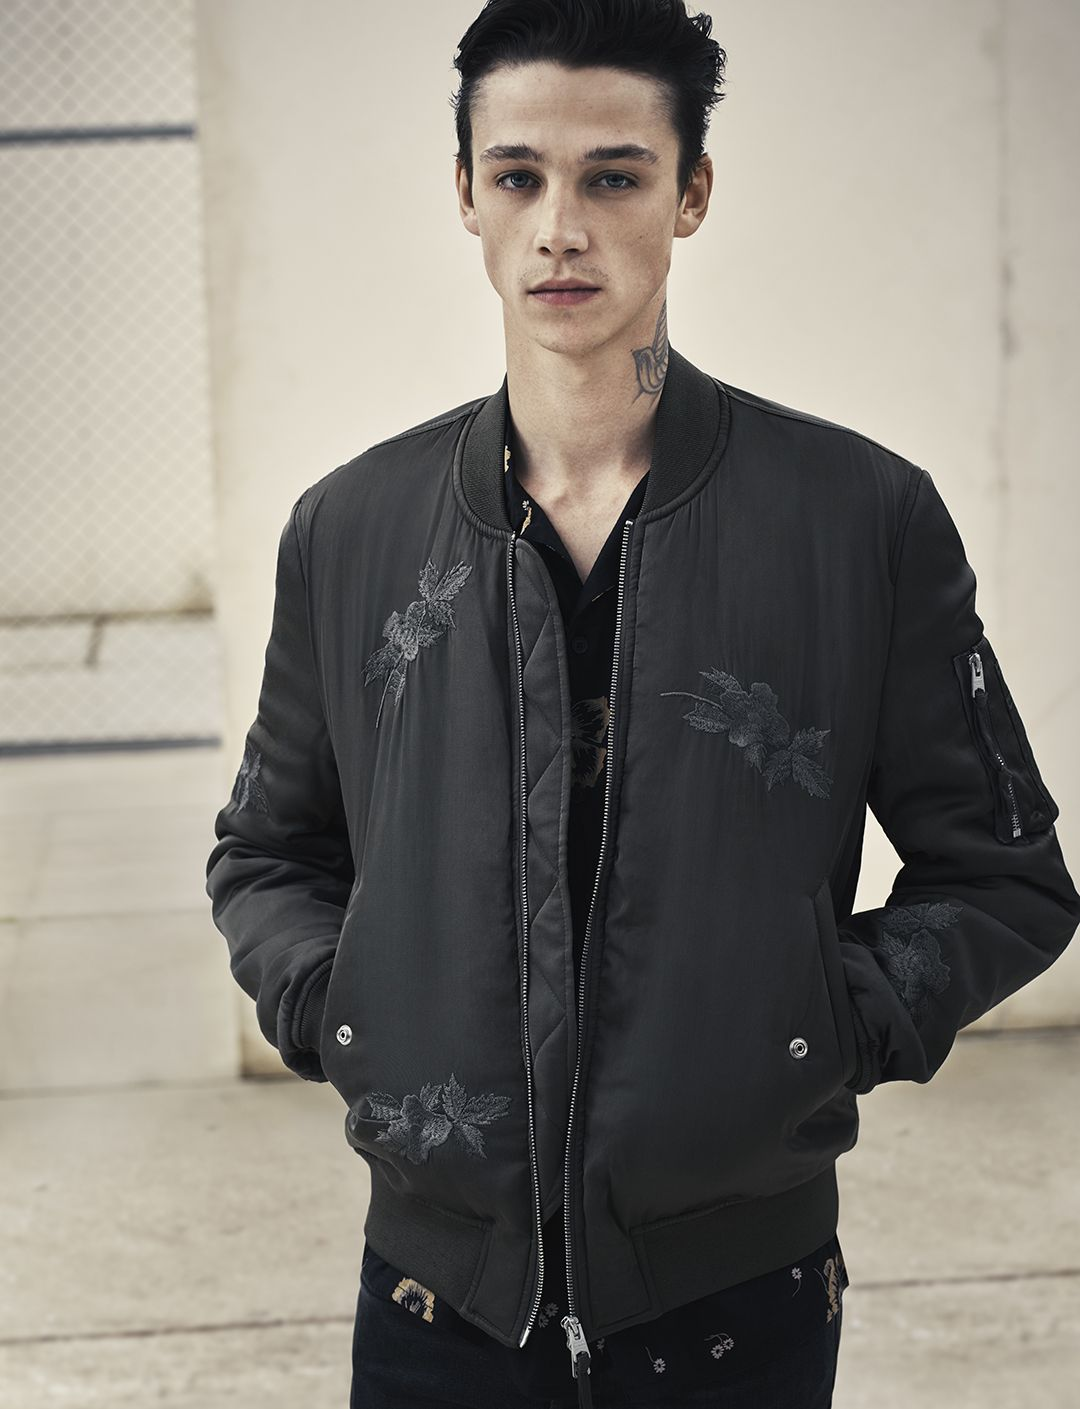 AllSaints Men's March Lookbook Look 2: The Kyushu Jacket, Sumire Ss Shirt #Marchlookbook